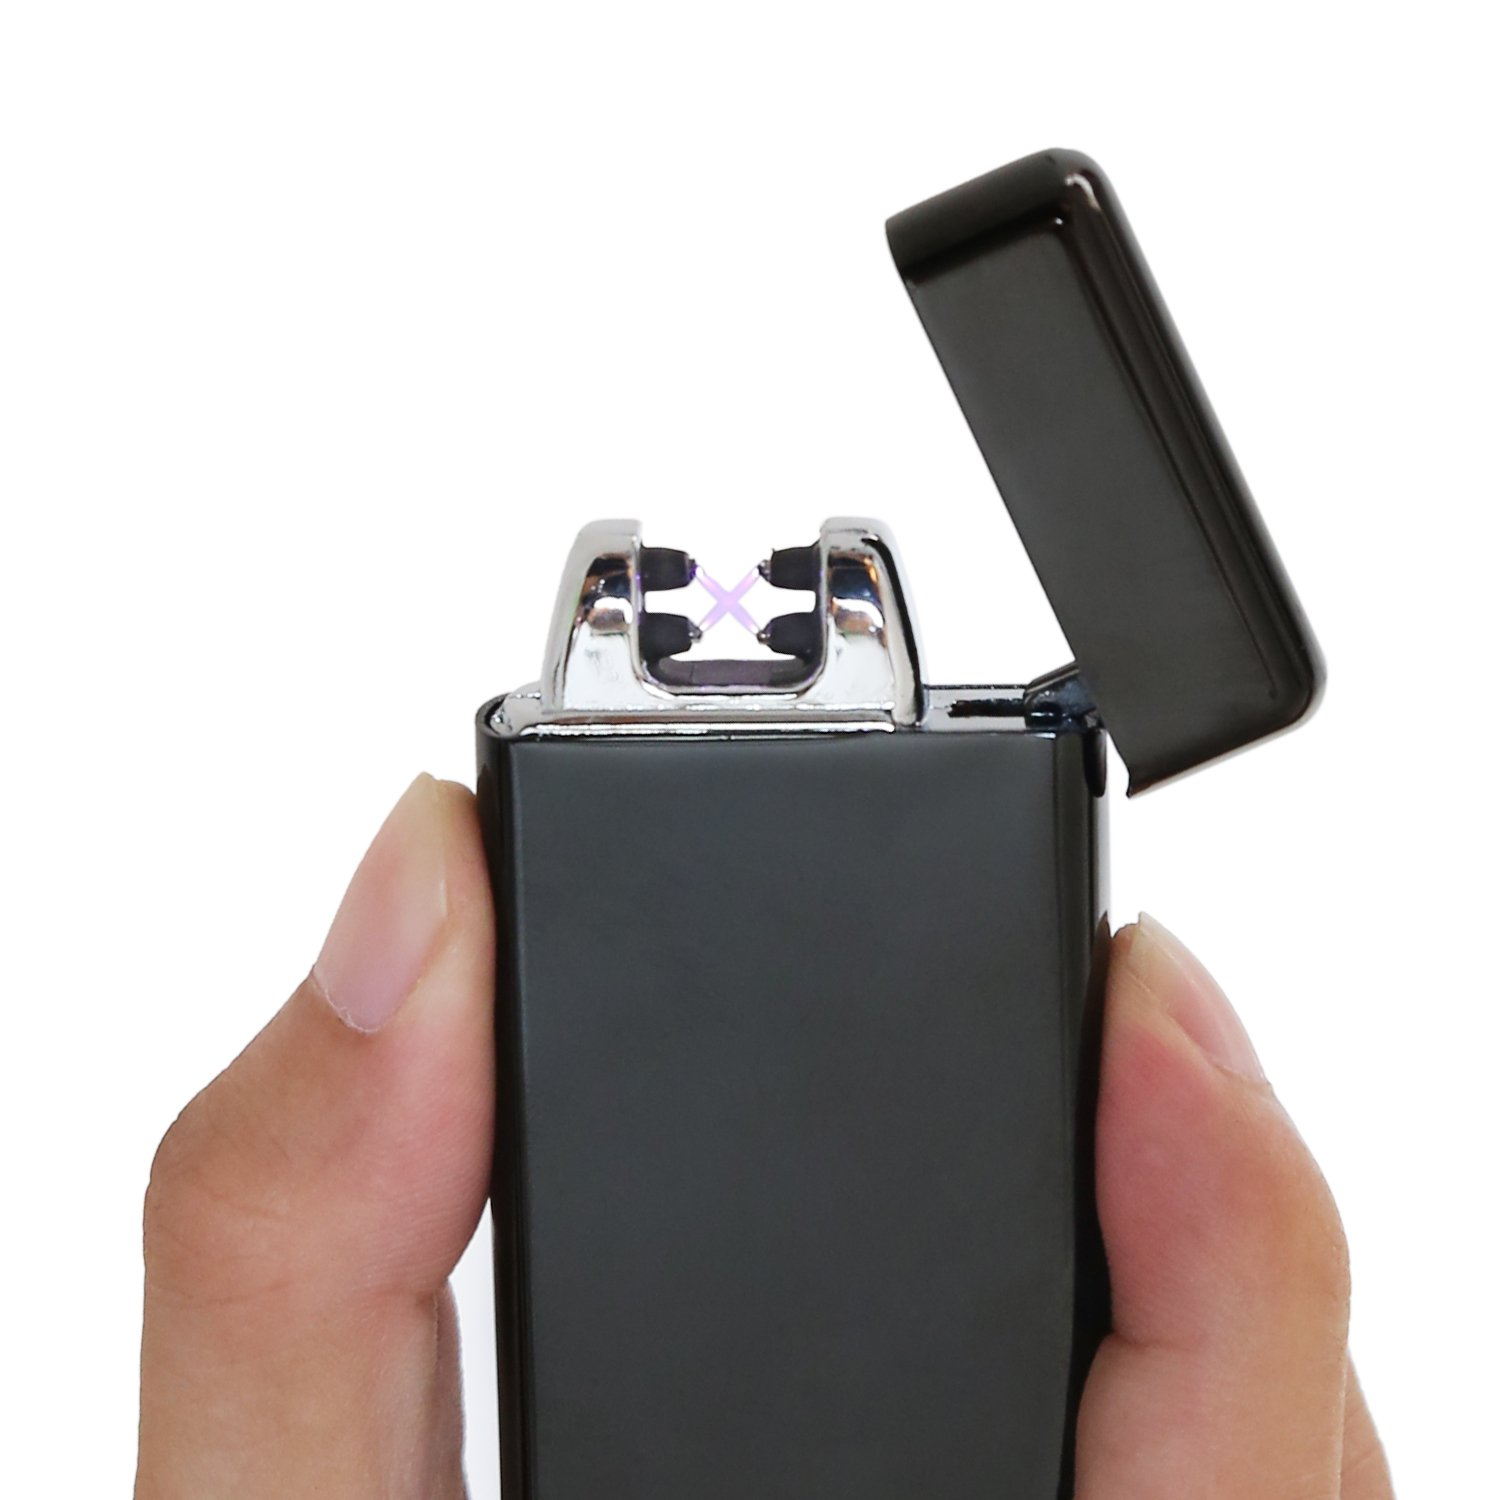 Ruiwo Tesla Coil Lighters Metal Rechargeable Windproof Flameless Electric Dual Arc USB Lighter (Black) by Ruiwo (Image #2)